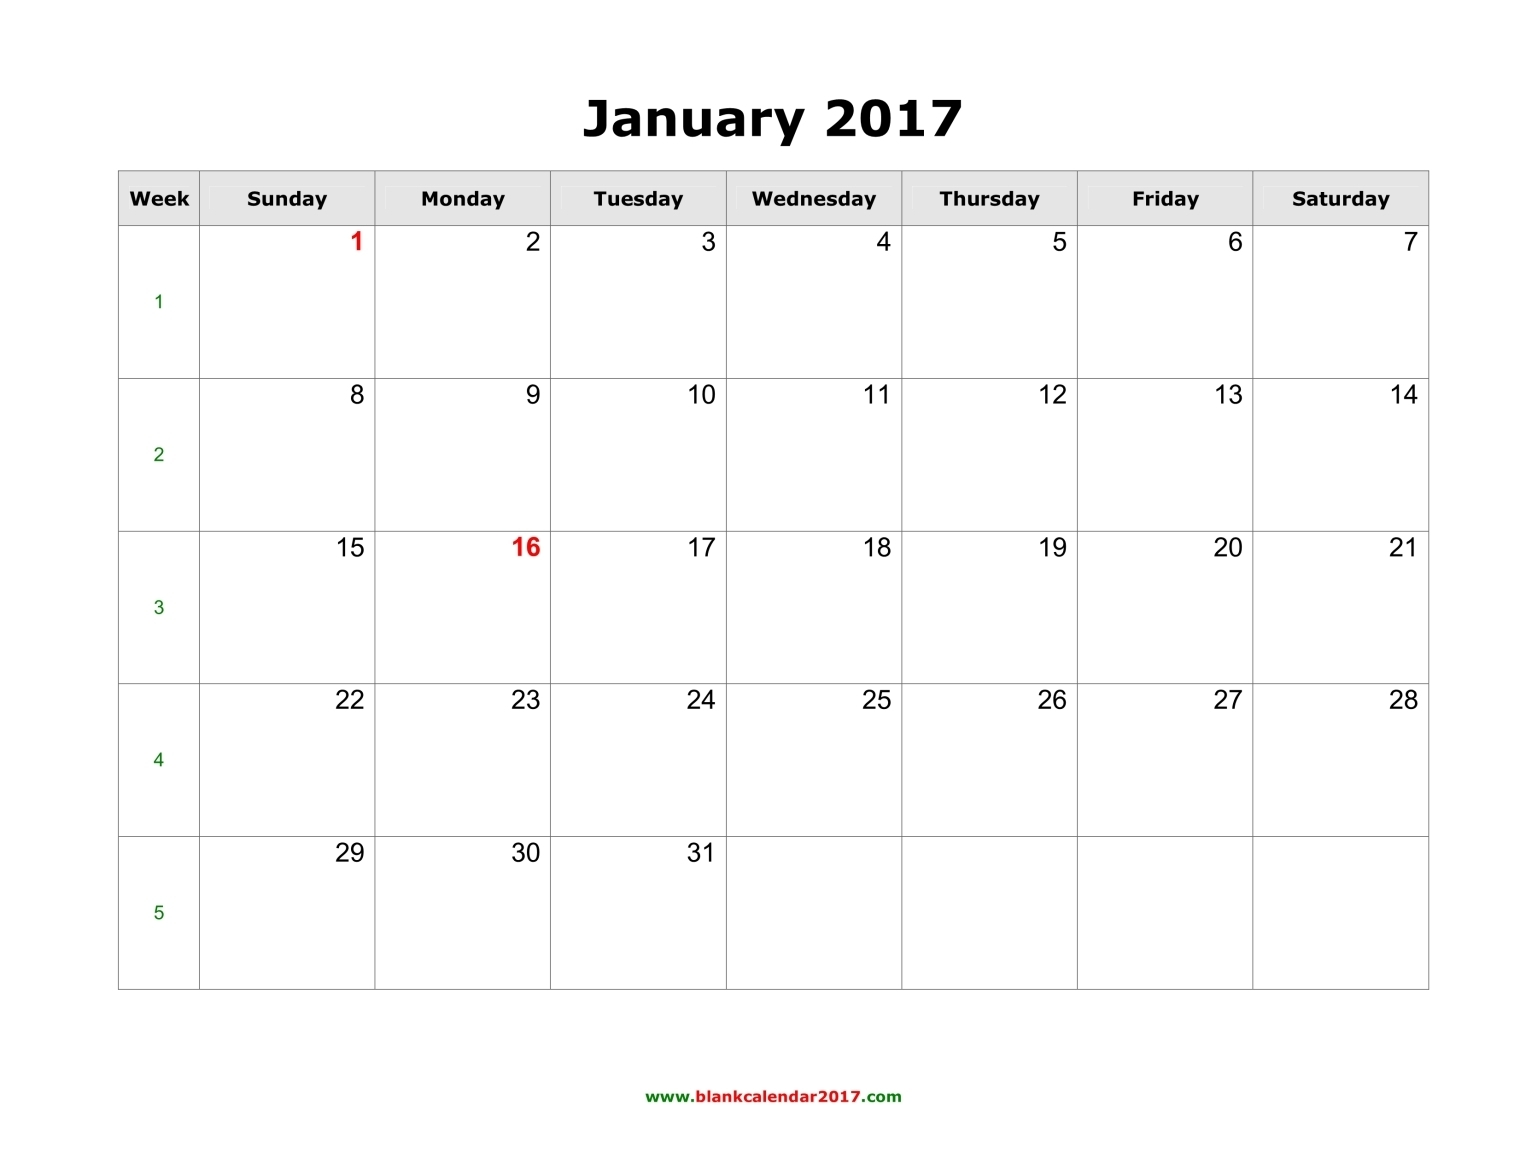 January 2017 Calendar Word Document